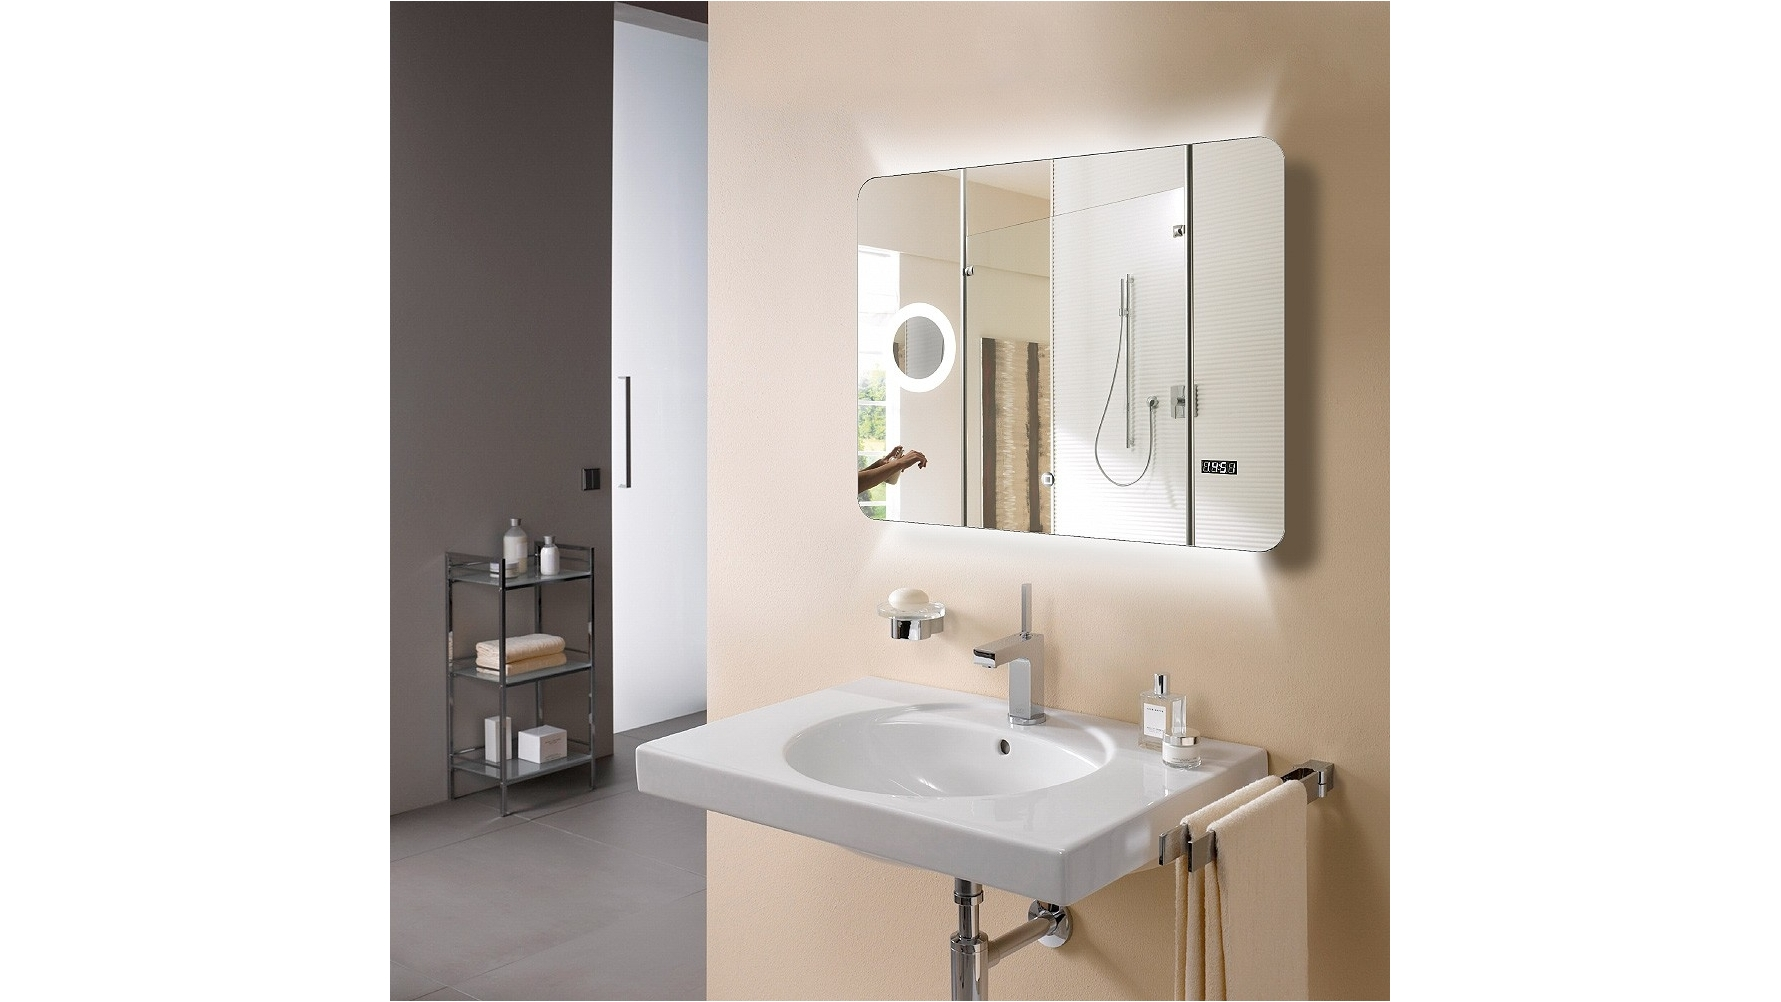 Buy Arcisan Eneo 900mm LED Mirror | Harvey Norman AU